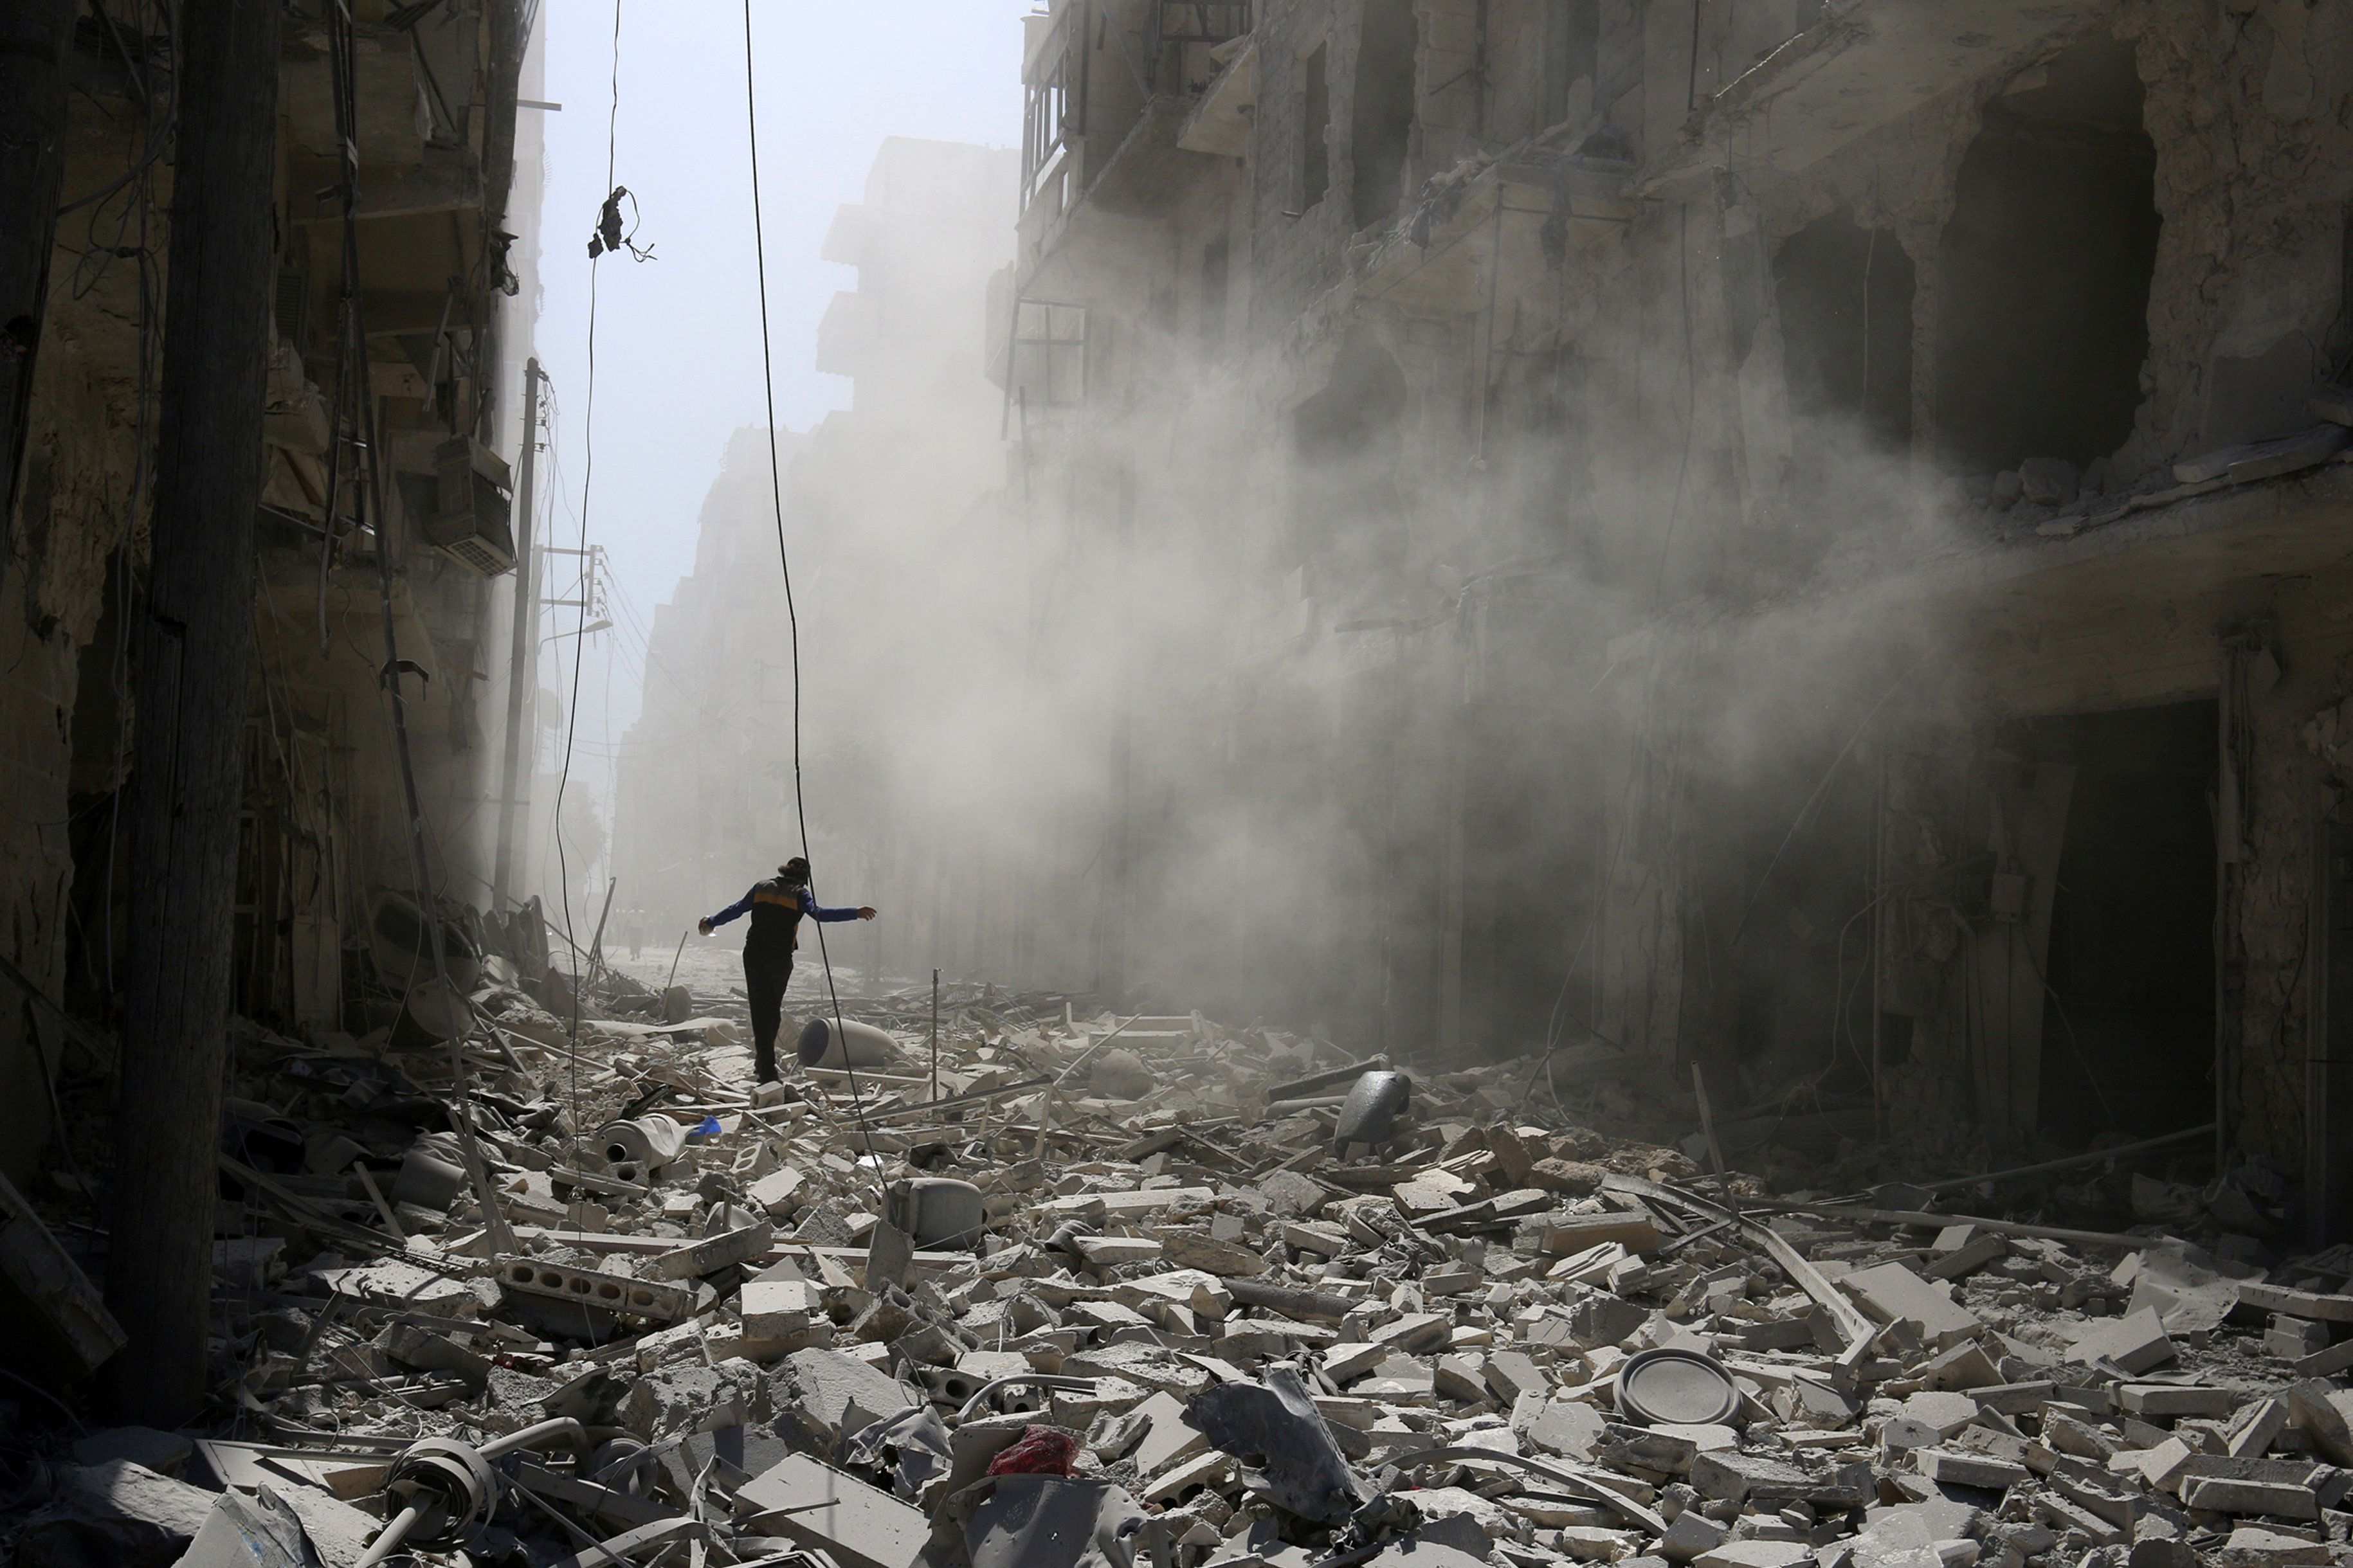 A man walks on the rubble of damaged buildings after an airstrike on the rebel held al-Qaterji neighbourhood of Aleppo, Syria September 25, 2016. REUTERS/Abdalrhman Ismail      TPX IMAGES OF THE DAY